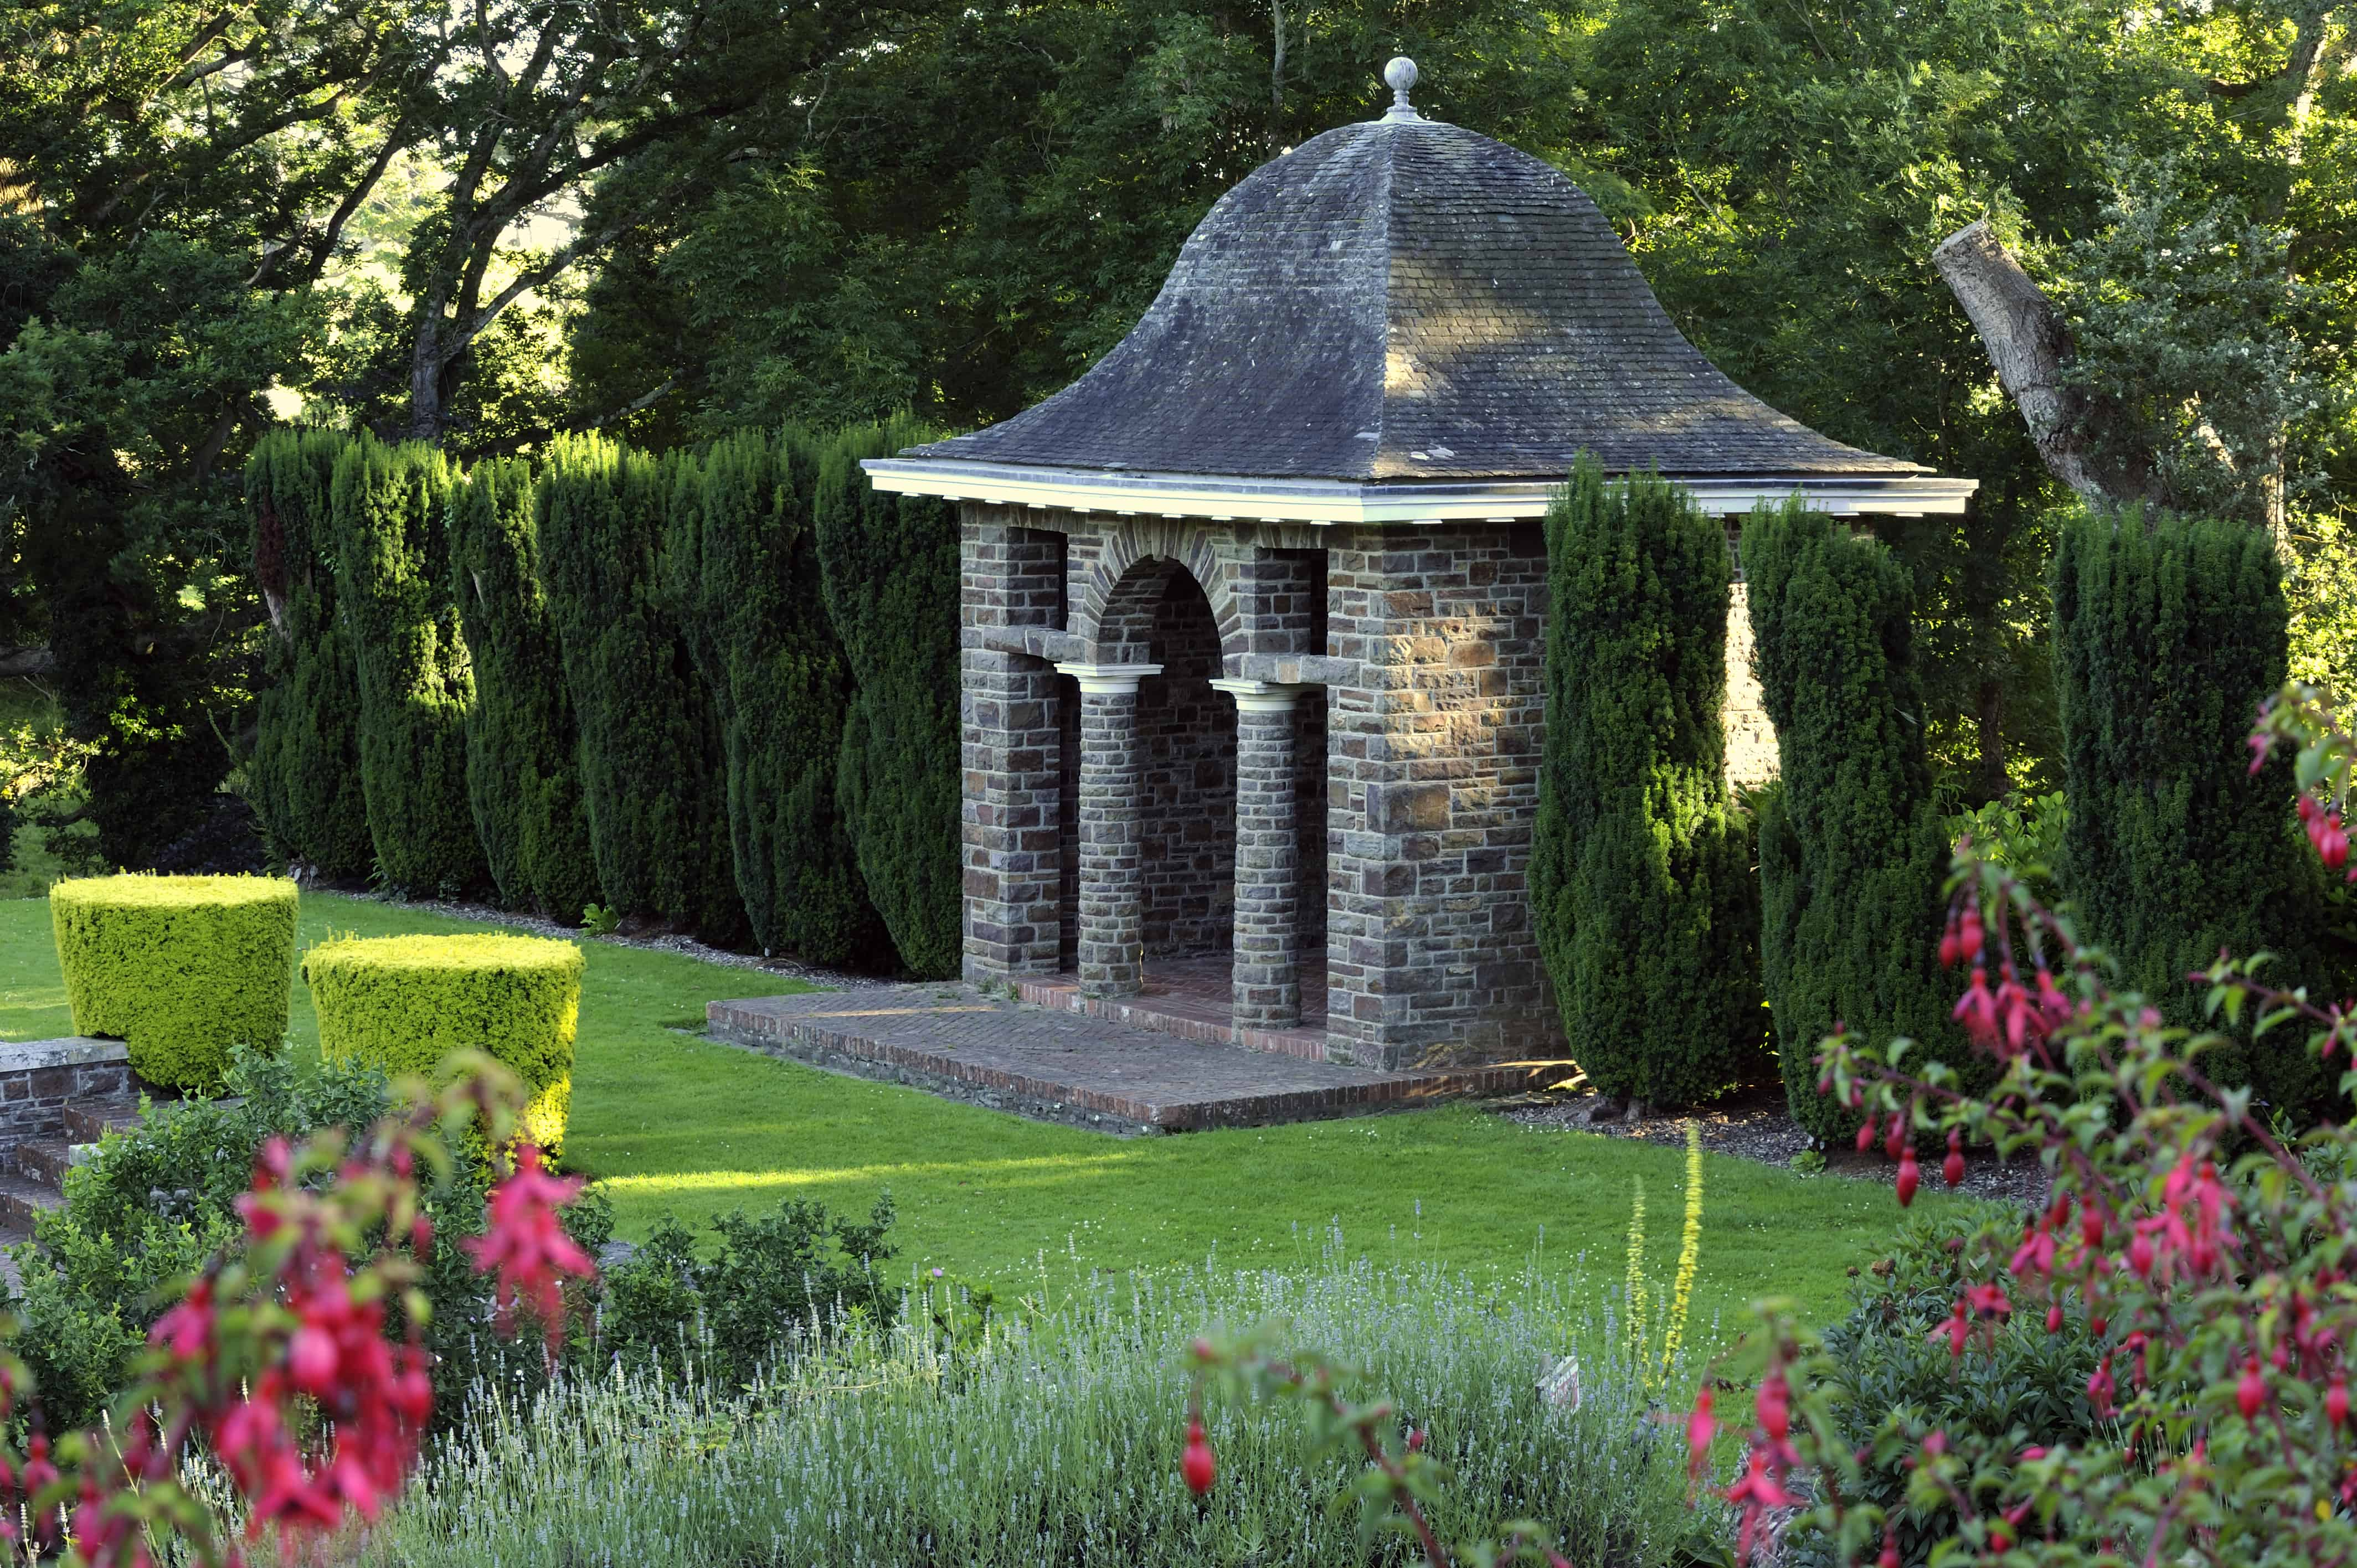 'Country Life' visits Tapeley Gardens